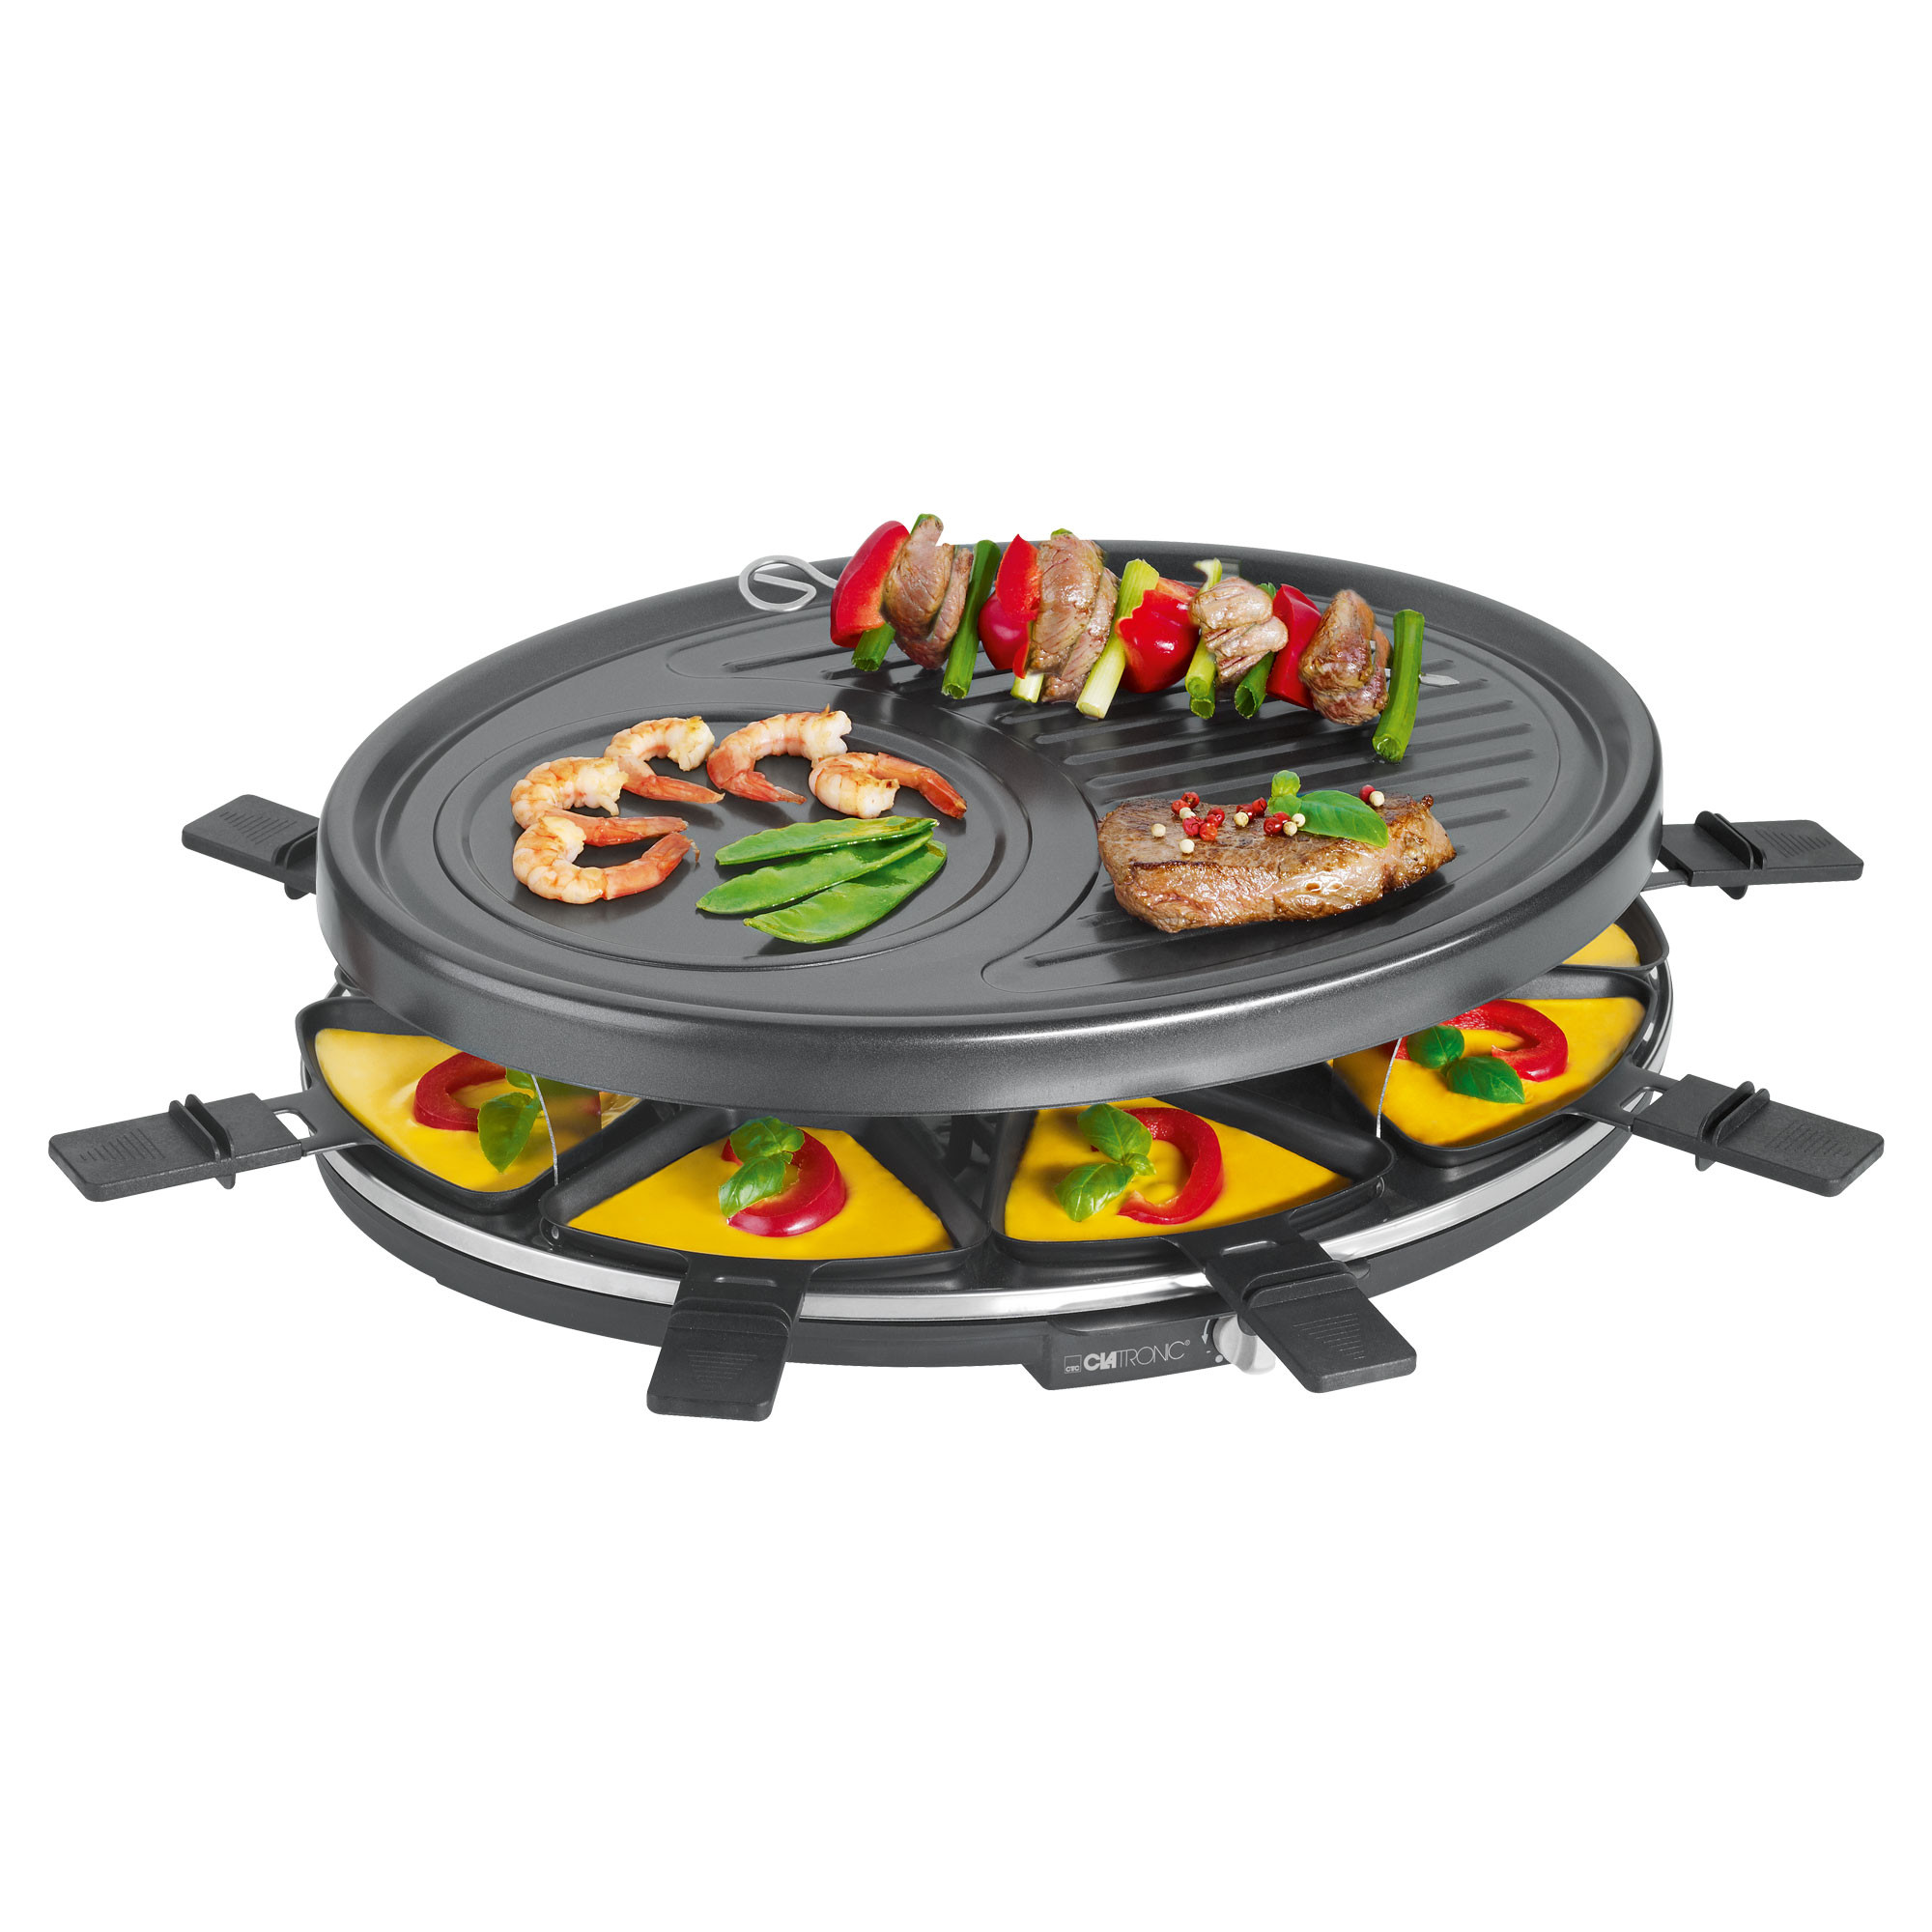 Clatronic RG 3517 - Raclette grill para 8 personas, 1400 W, color negro